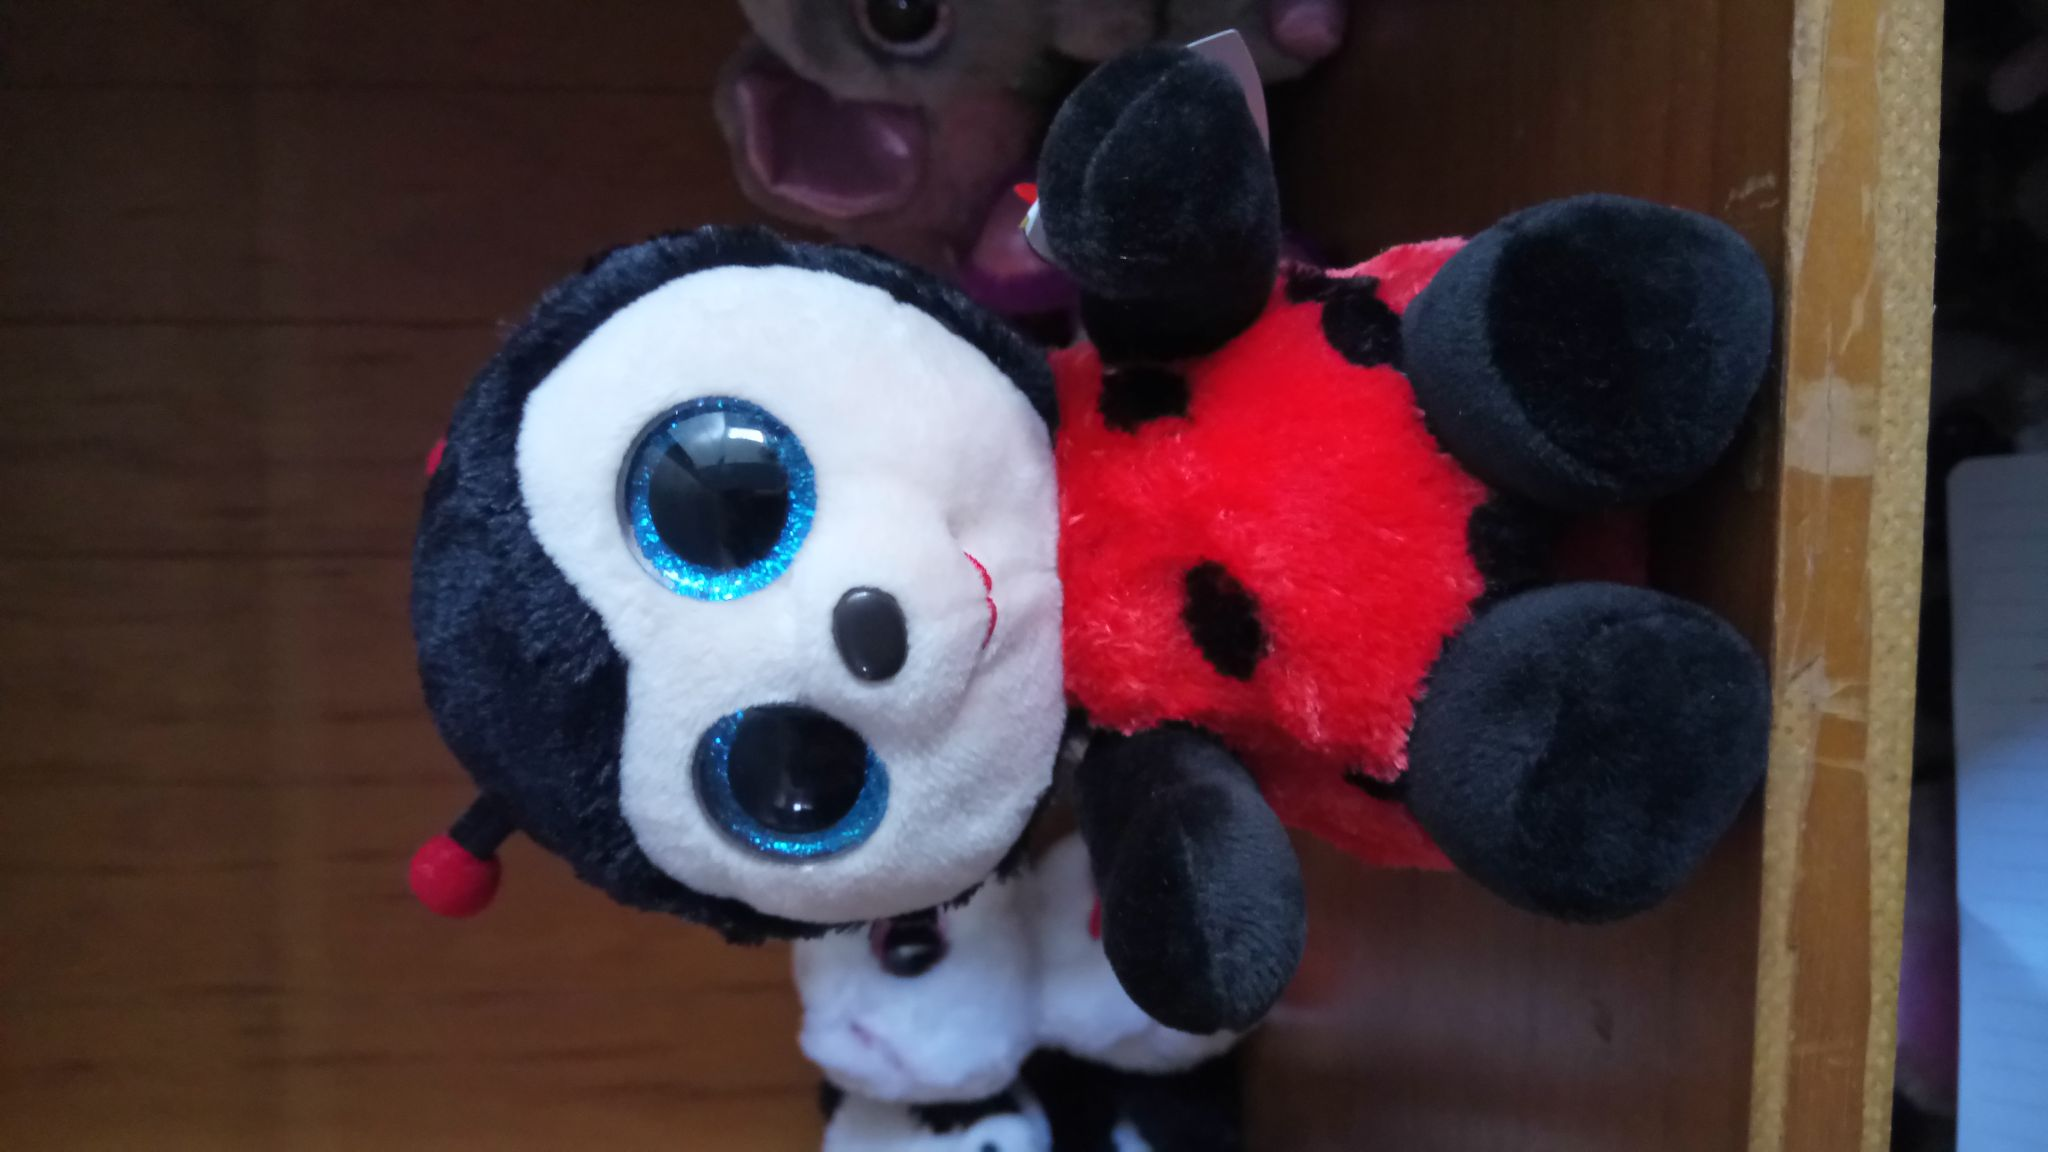 Izzy The Lady Bug Beanie Baby - Red front image (front cover)